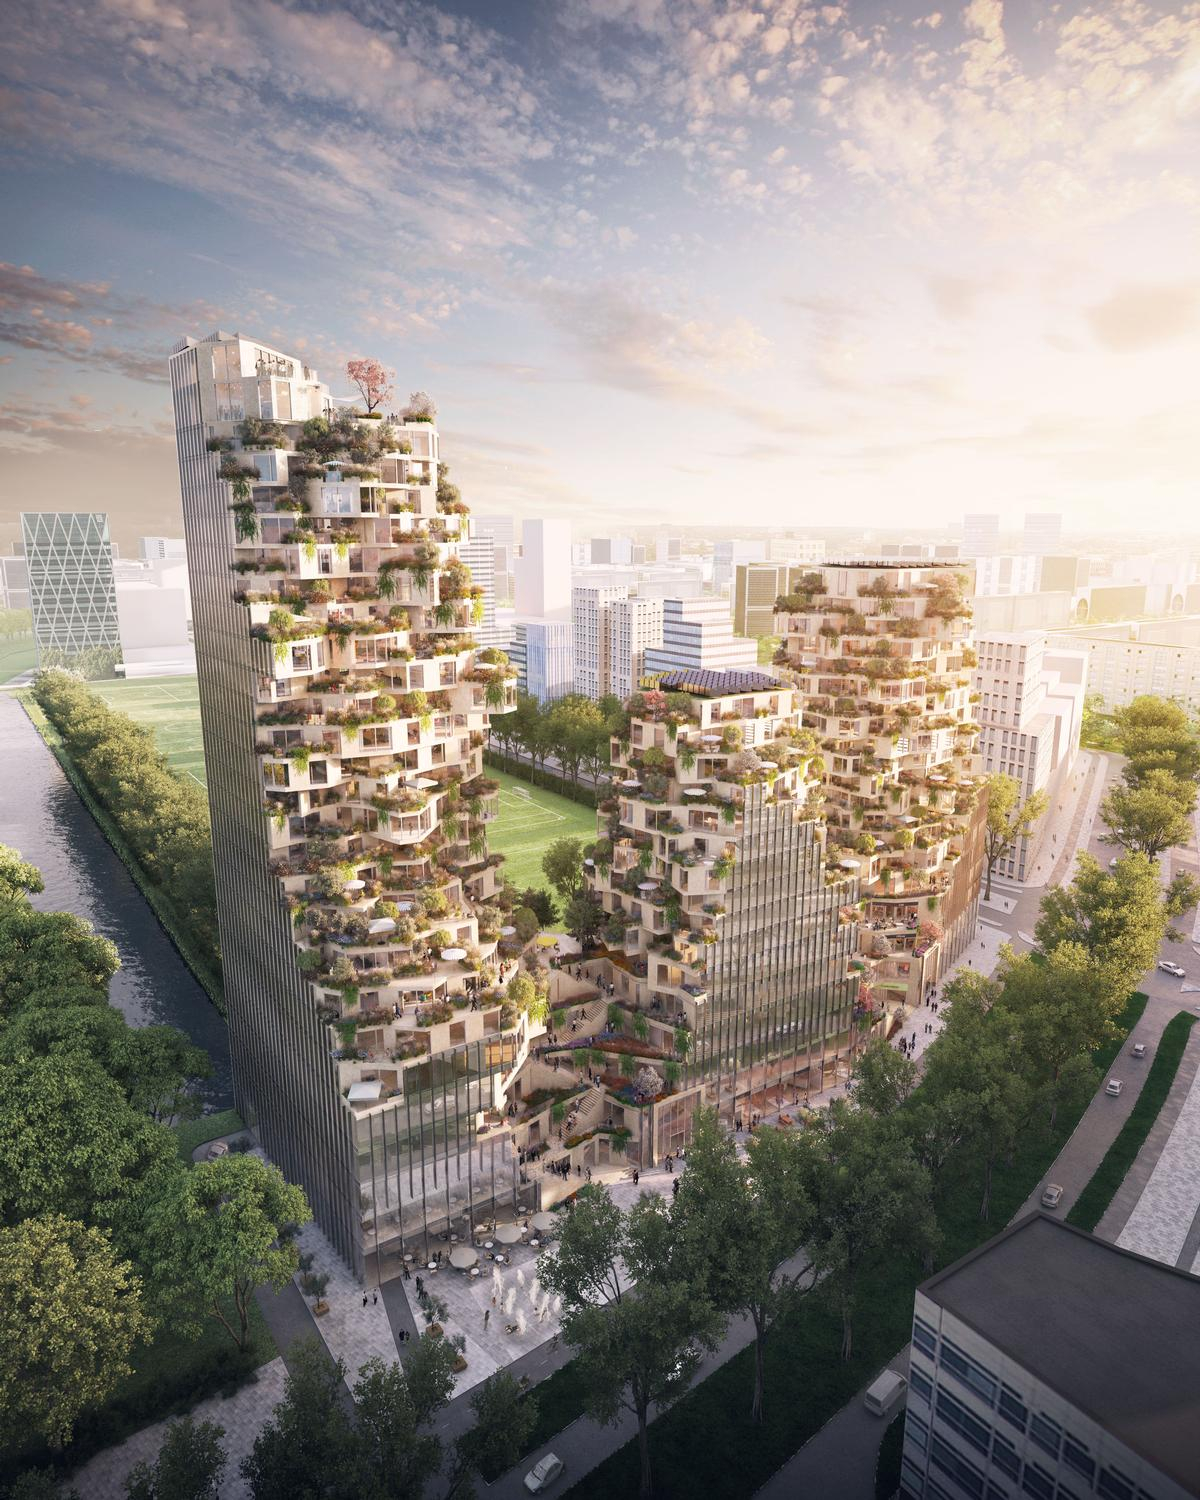 The building, called Valley, will have three towers of varied heights, reaching up to a maximum of 100m, with a series of terraces ascending each / MVRDV